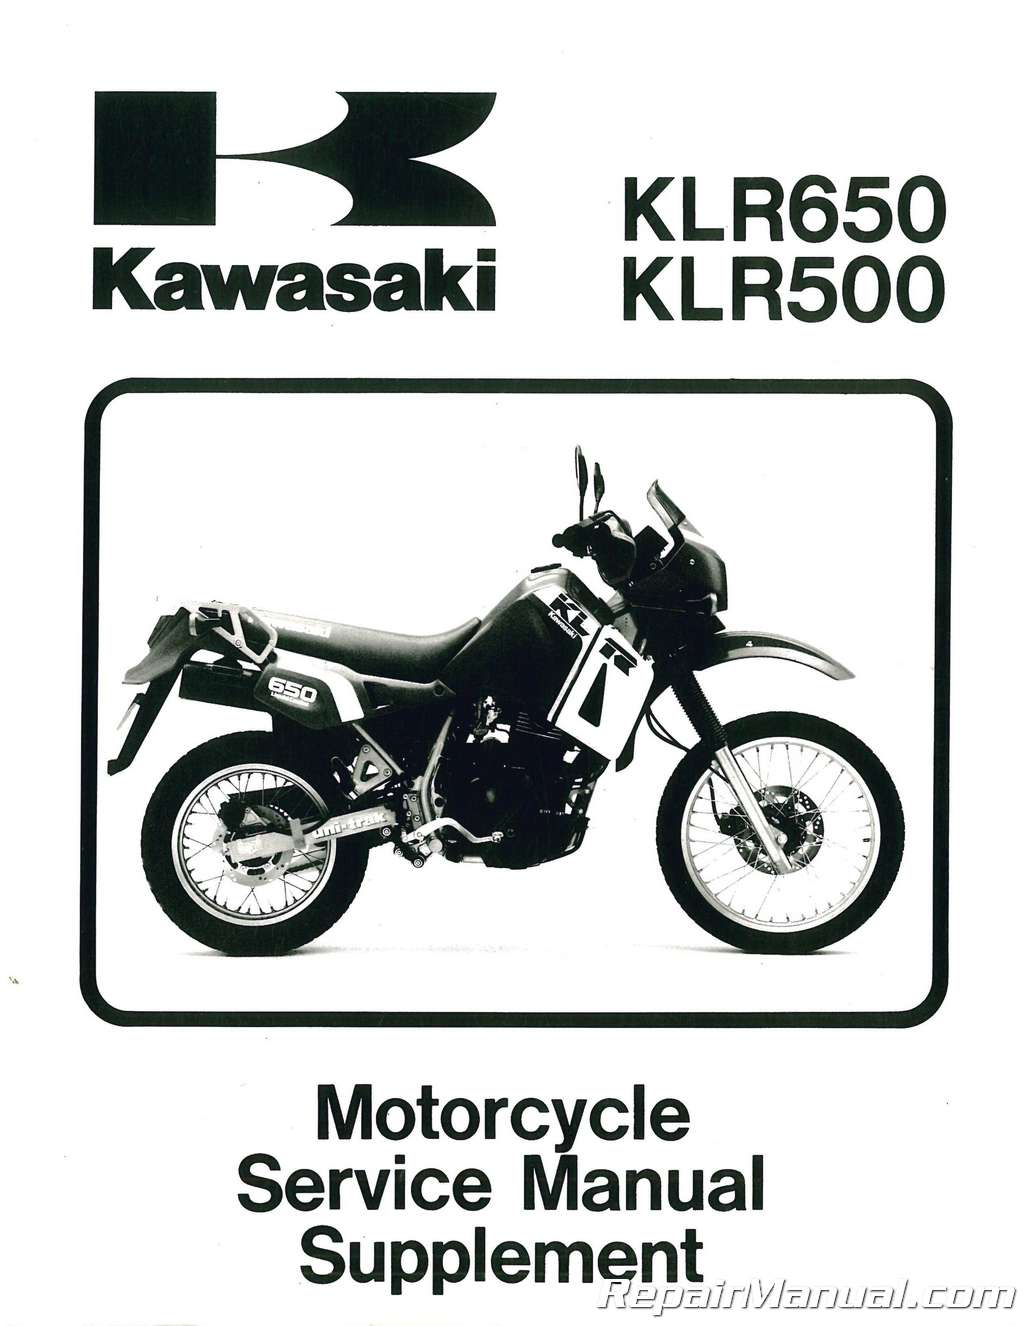 1987-2004-Kawasaki-KLR650-Service-Manual-Supplement_001.jpg ...